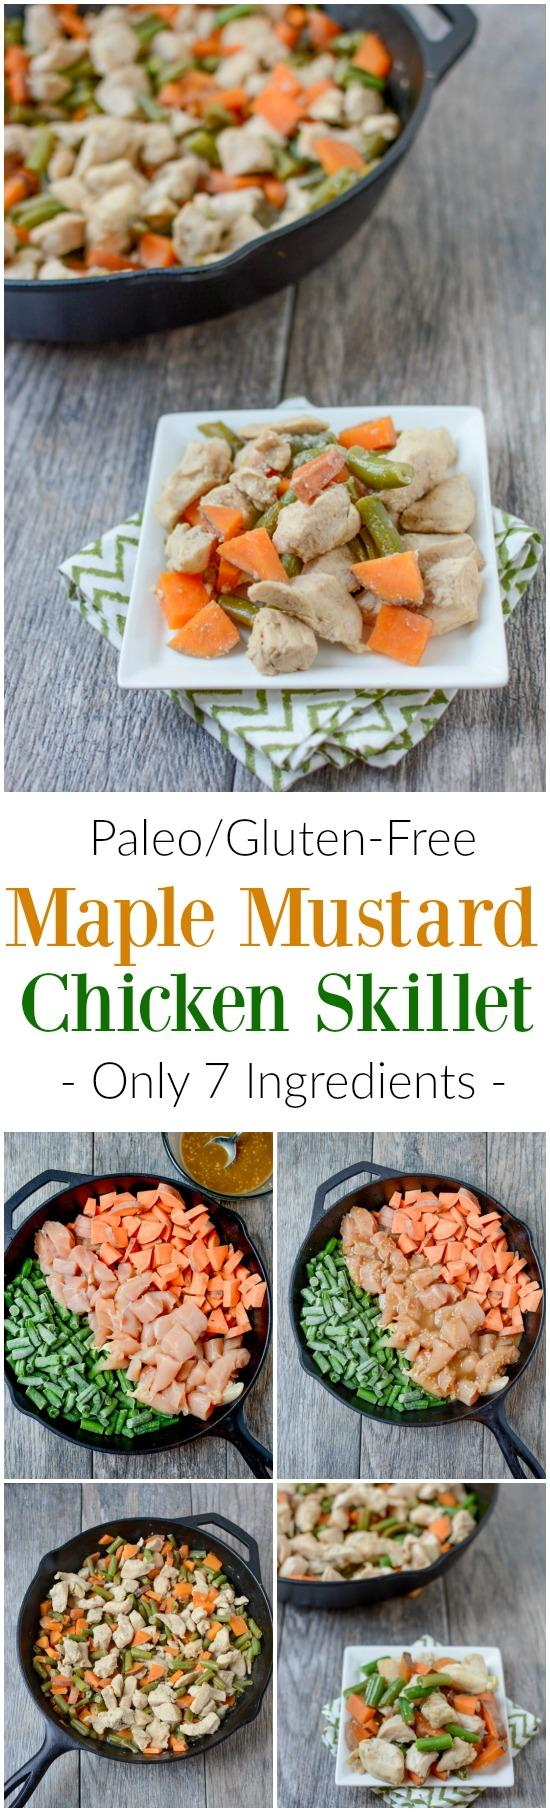 Made with just seven ingredients, this recipe for Maple Mustard Chicken Skillet makes a great weeknight dinner. It's a paleo, gluten-free and full of flavor!